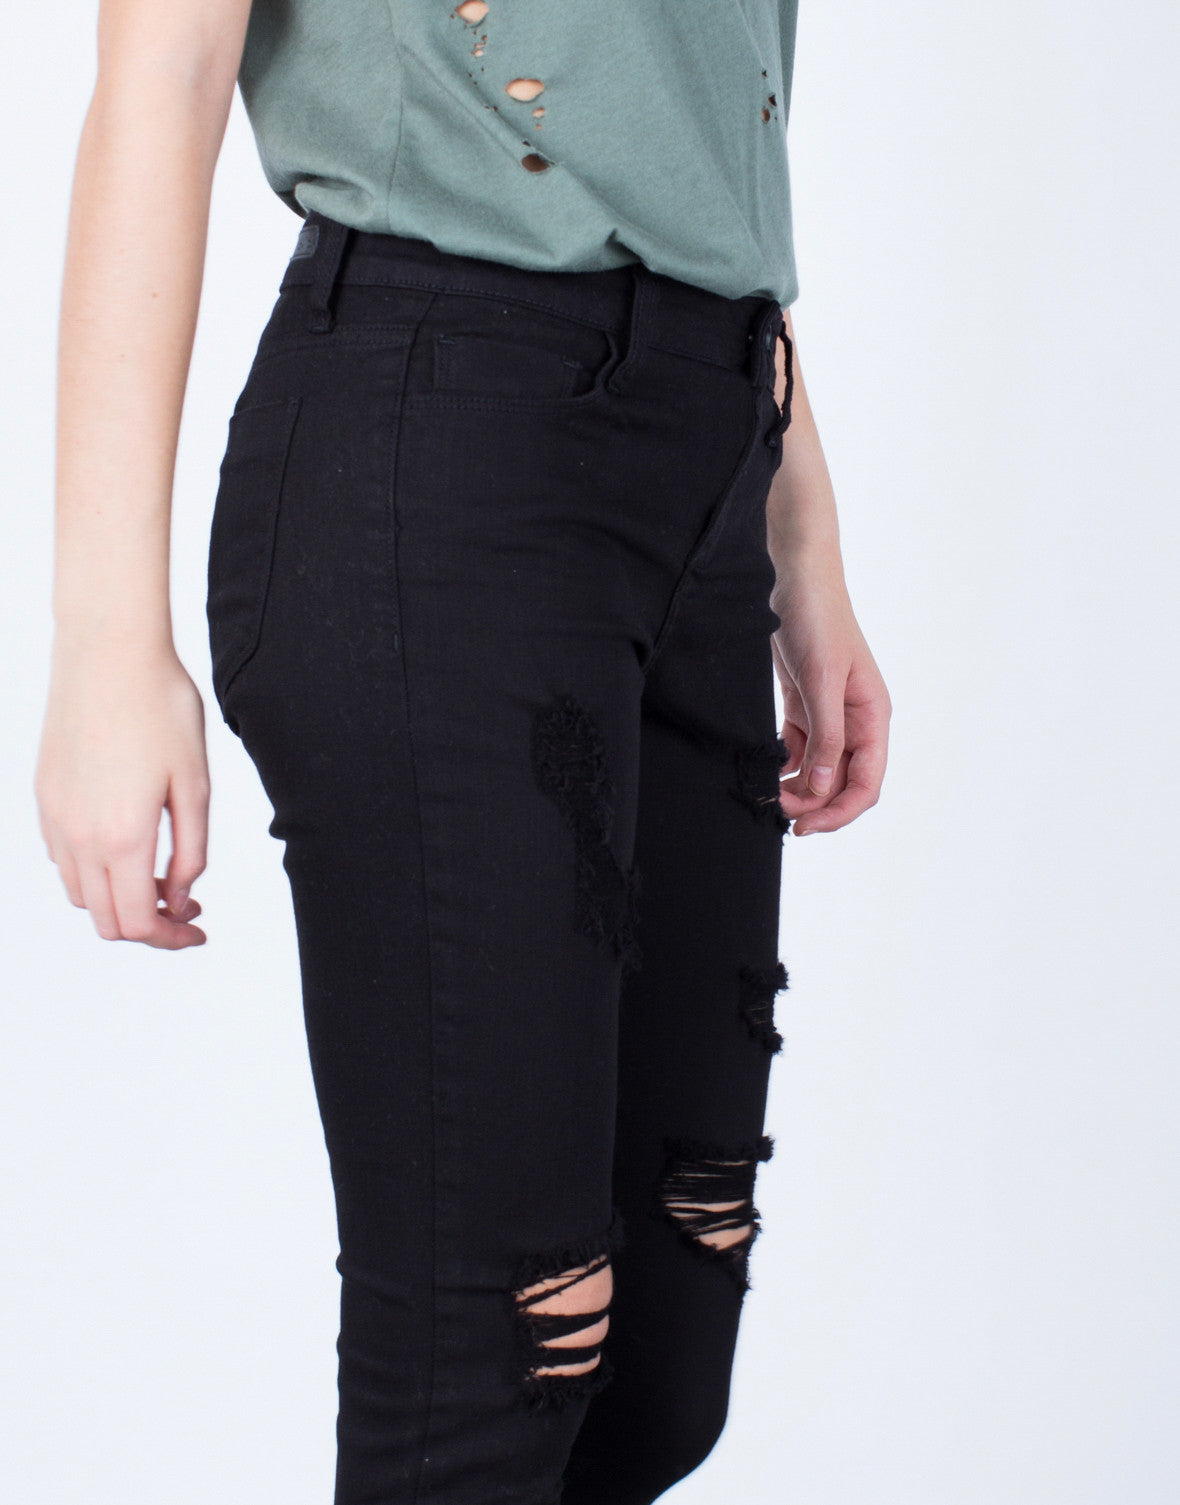 Detail of Ripped Black Denim Jeans